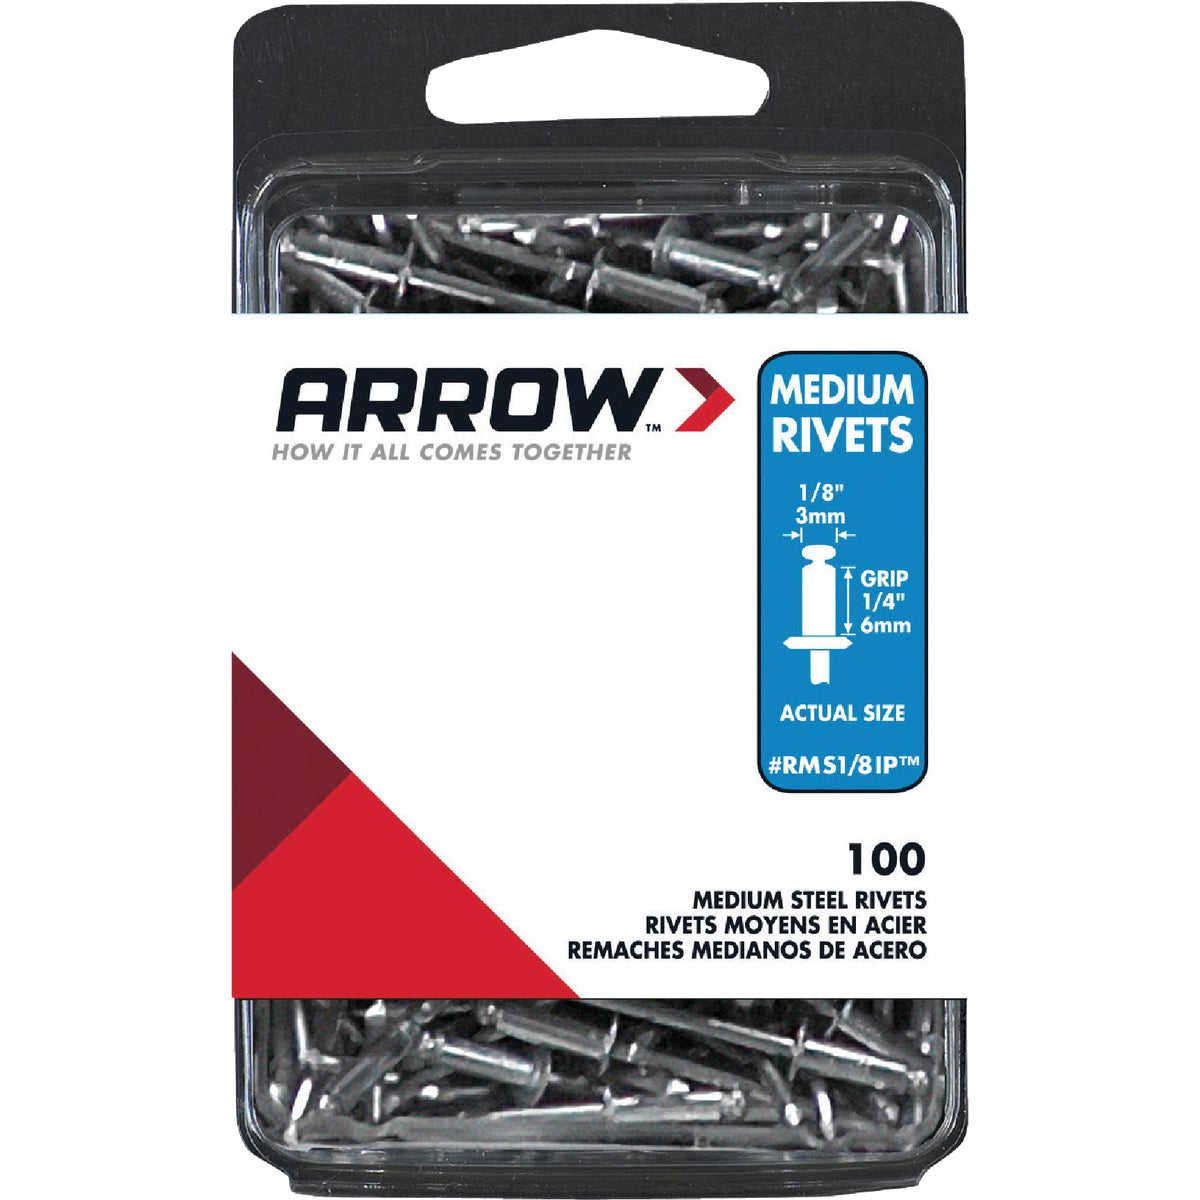 1/8X1/4 STL RIVET - RMS1/8IP by Arrow Fastener Co